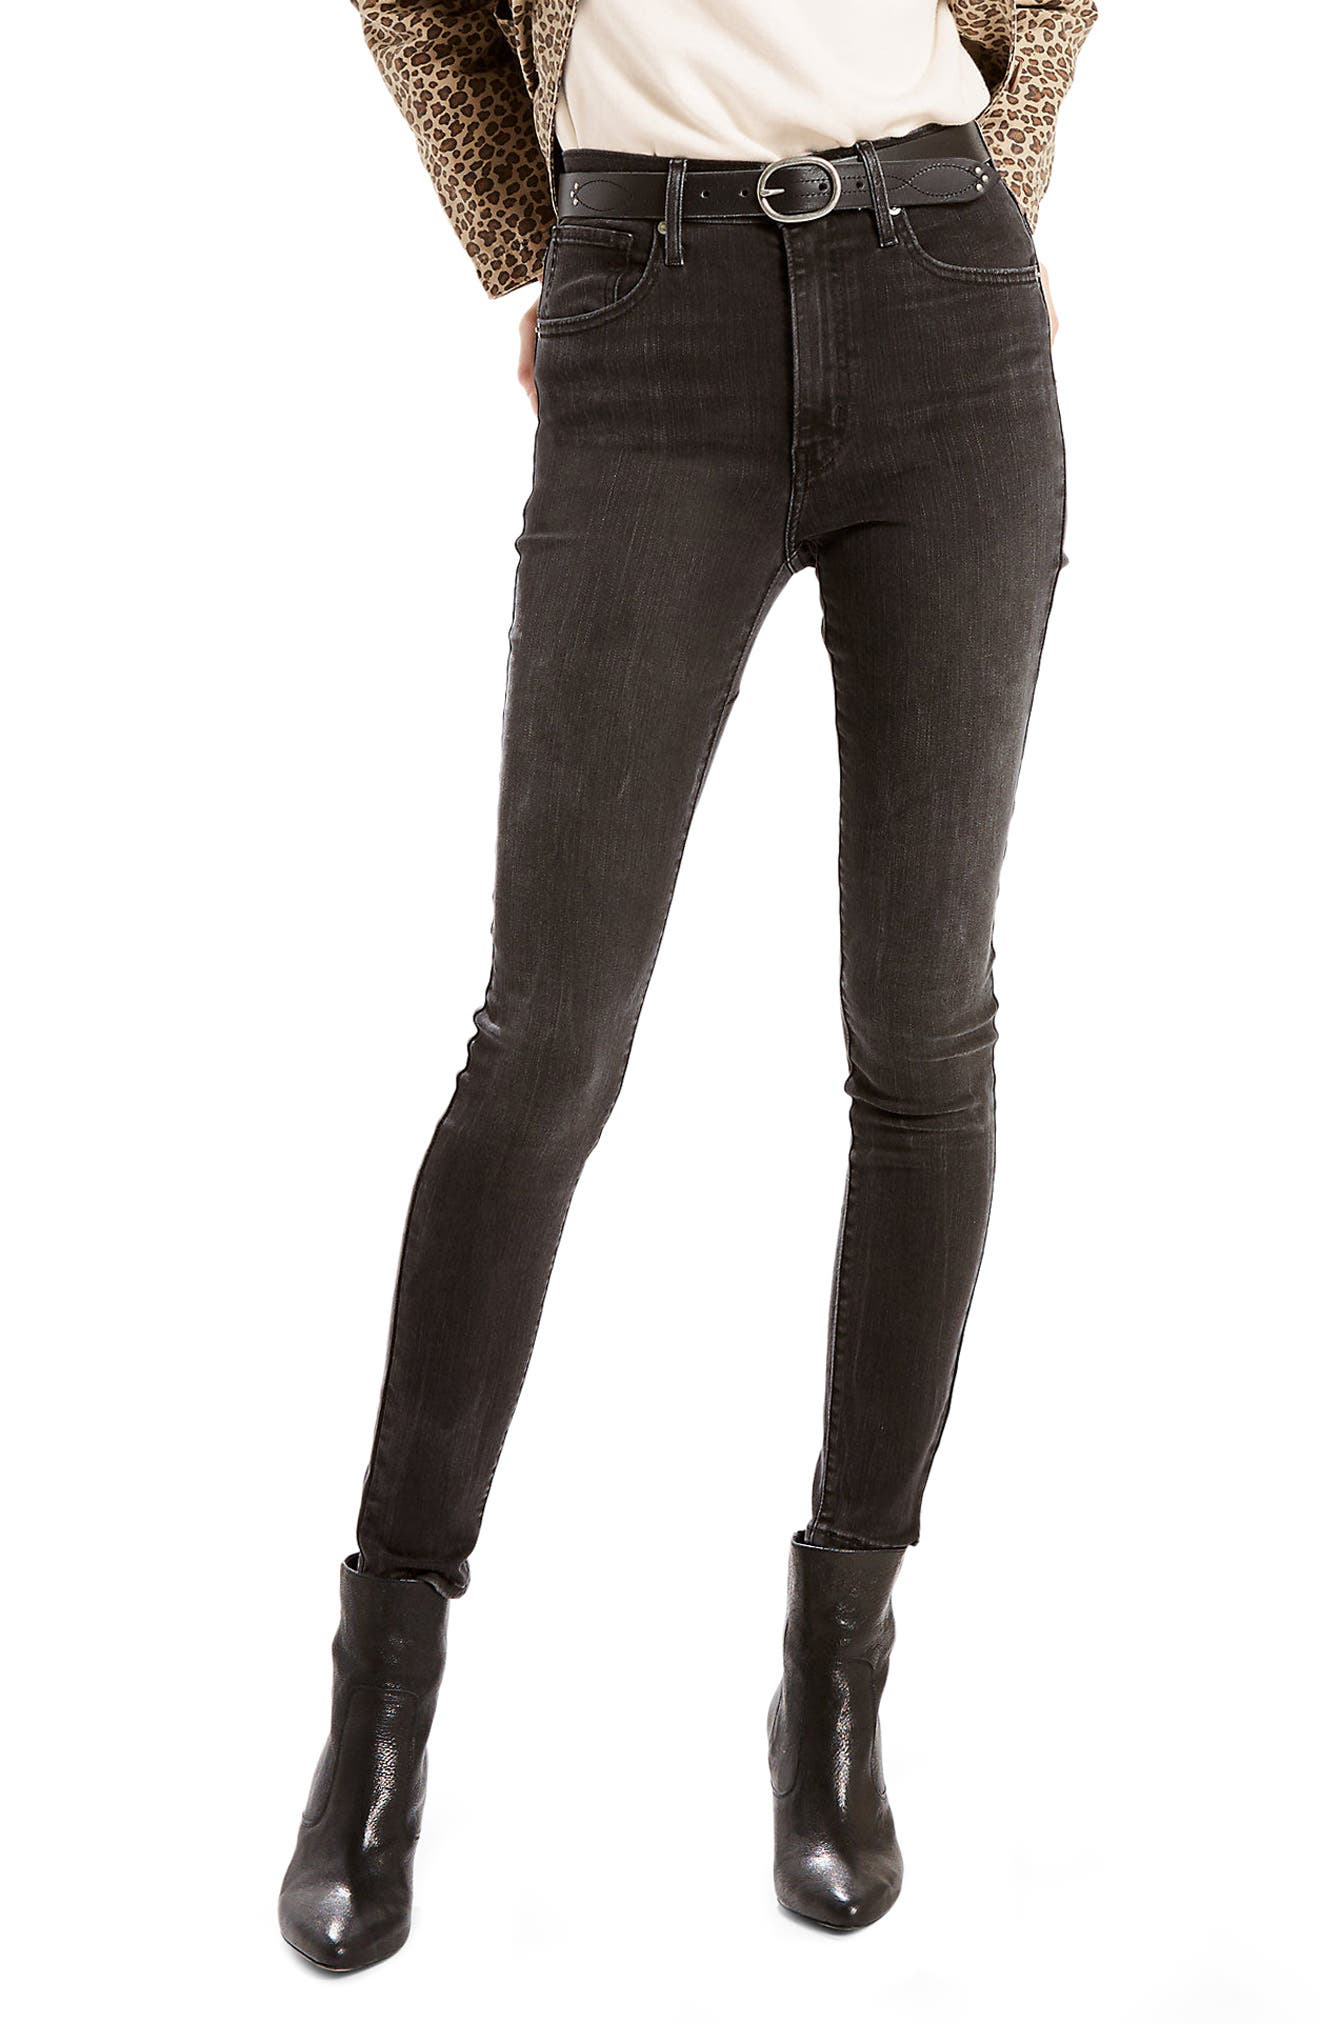 Alternate Image 1 Selected - Levi's® Mile High High Waist Super Skinny Jeans (SF Nights)